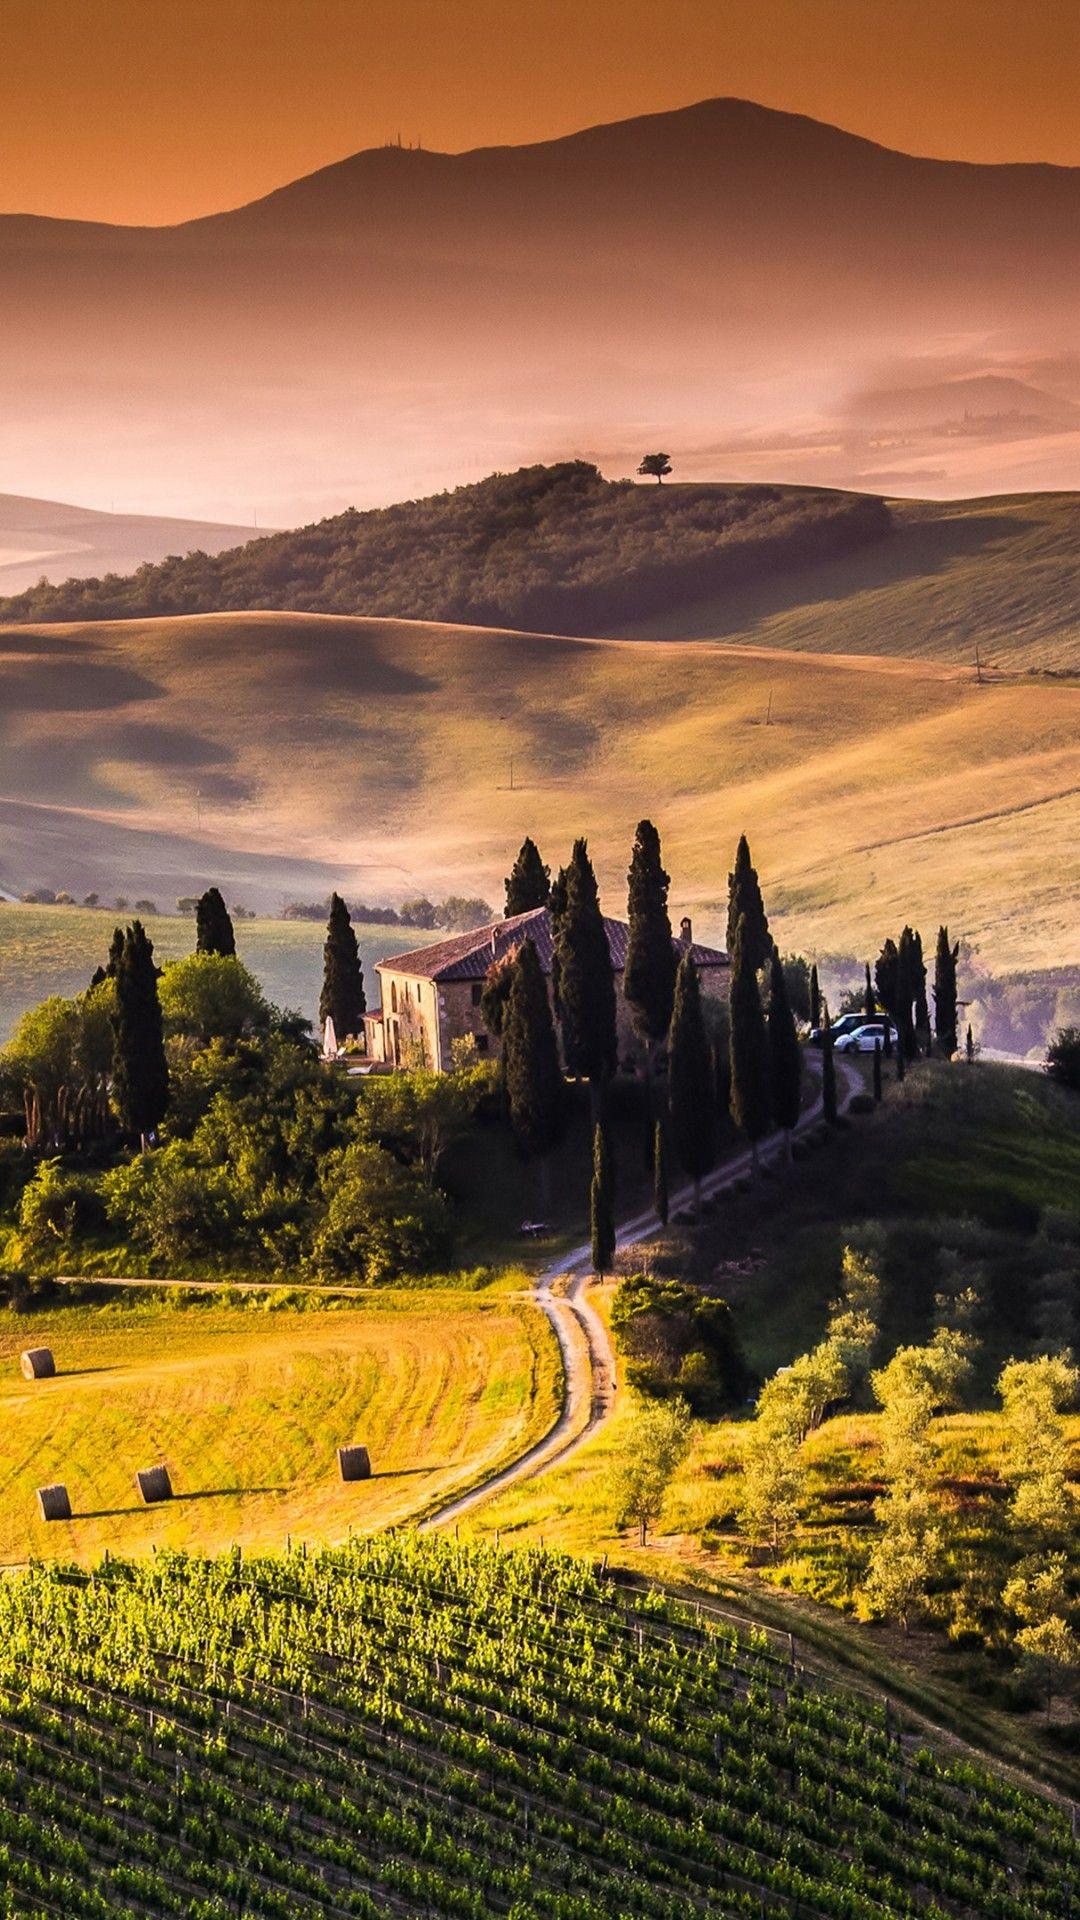 Landscape 4k Ultra Hd Wallpaper Tuscany Landscape 4k Ultra Hd Wallpaper 4k Wallpaper Net Tuscany Landscape Landscape Wallpaper Iphone Wallpaper Landscape